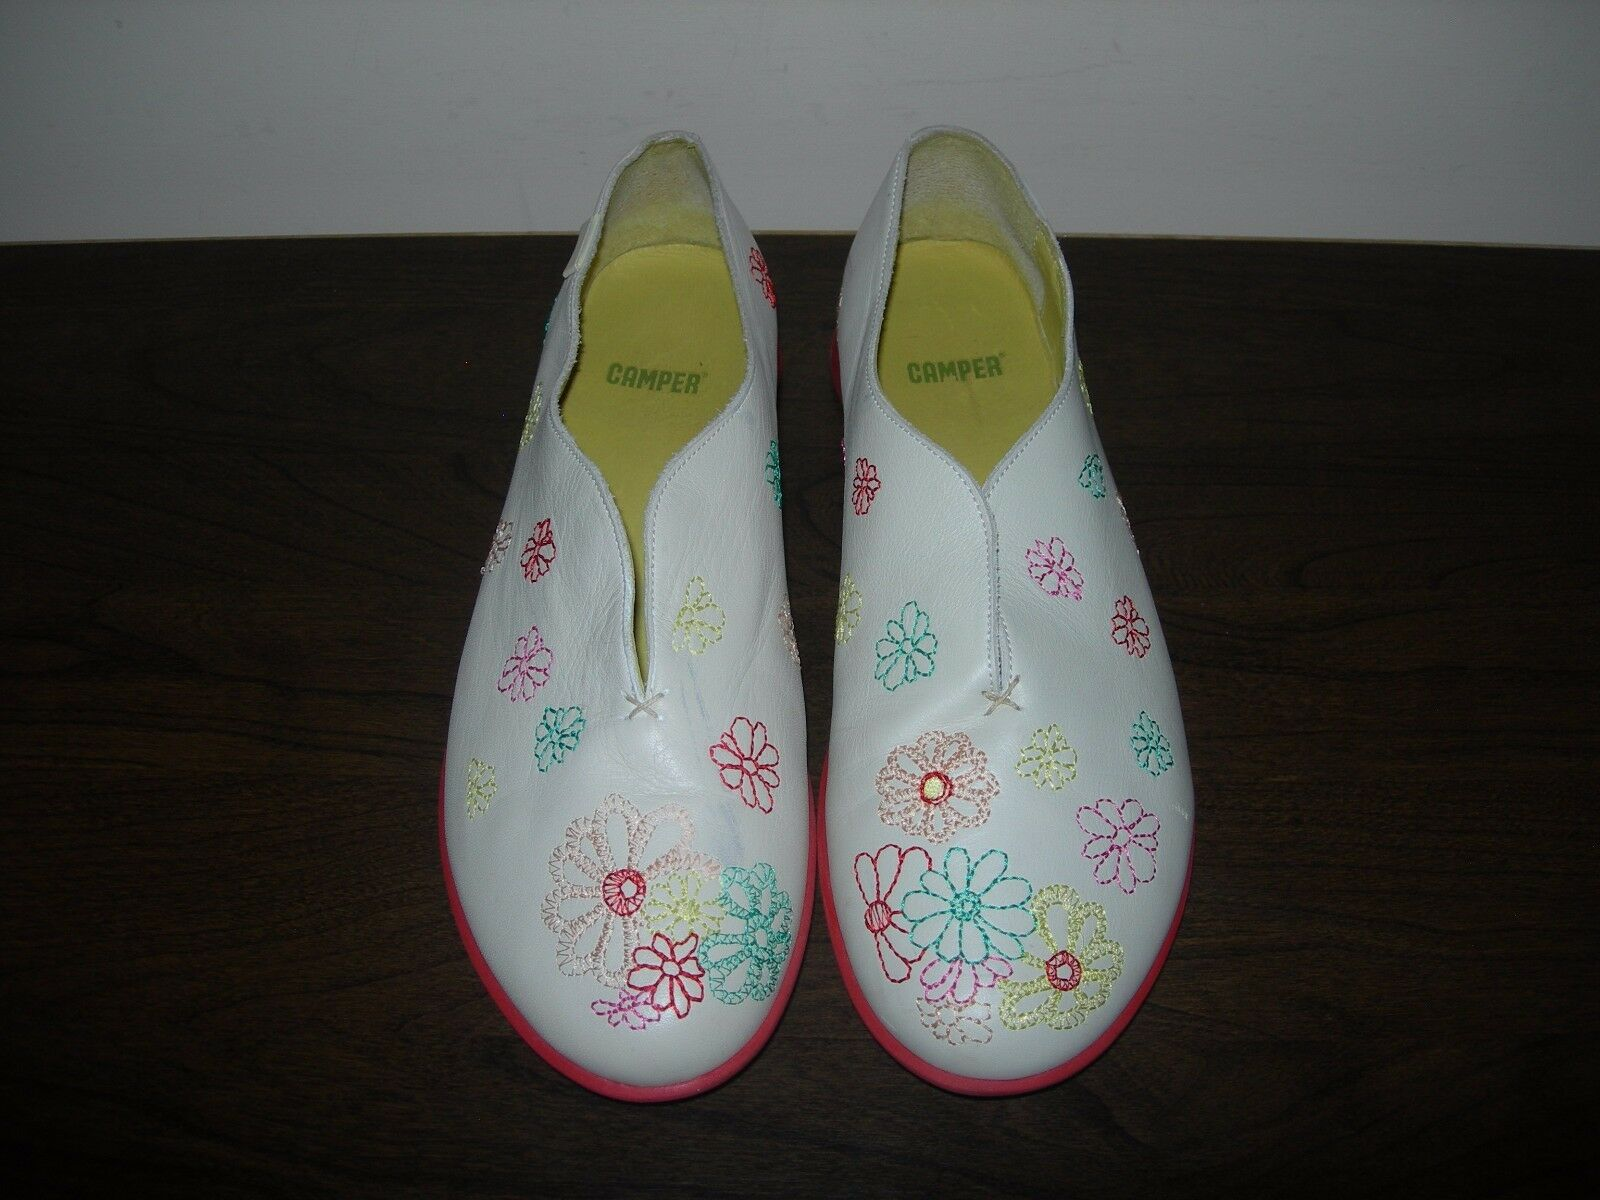 CAMPER WOMEN'S SHOES SLIP ON PUMPS FLAT IVORY LEATHER FLORAL EU 41- 40   UK 8- 7